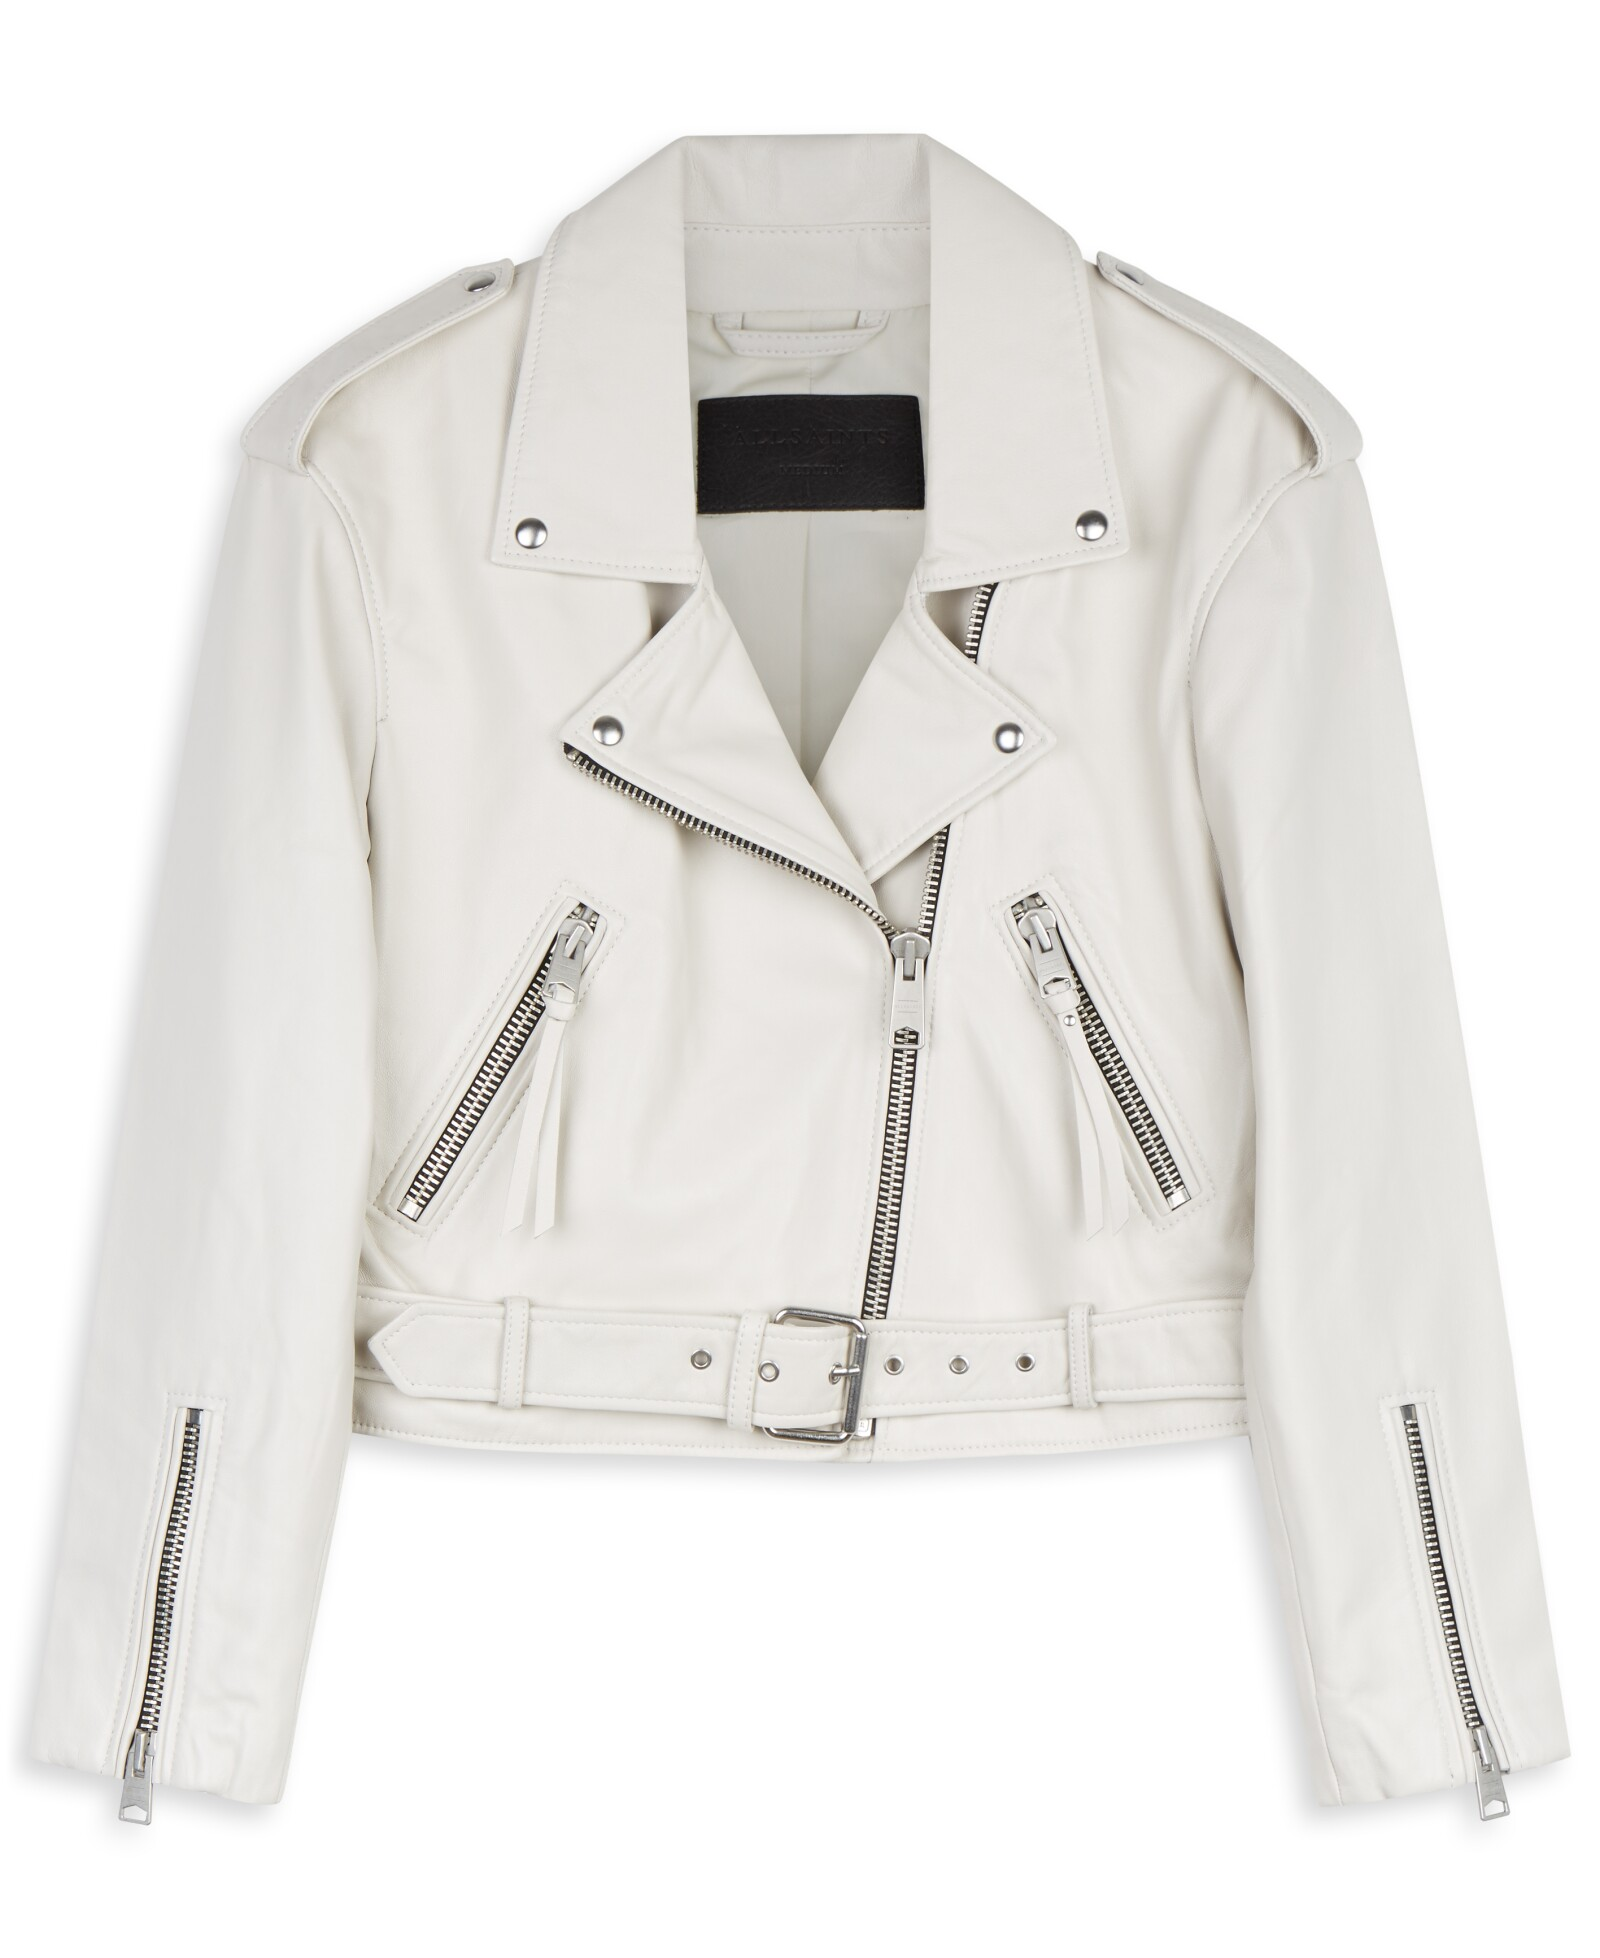 Copy of Anderson Biker - White - £345 - $525 - €435 - April.jpg